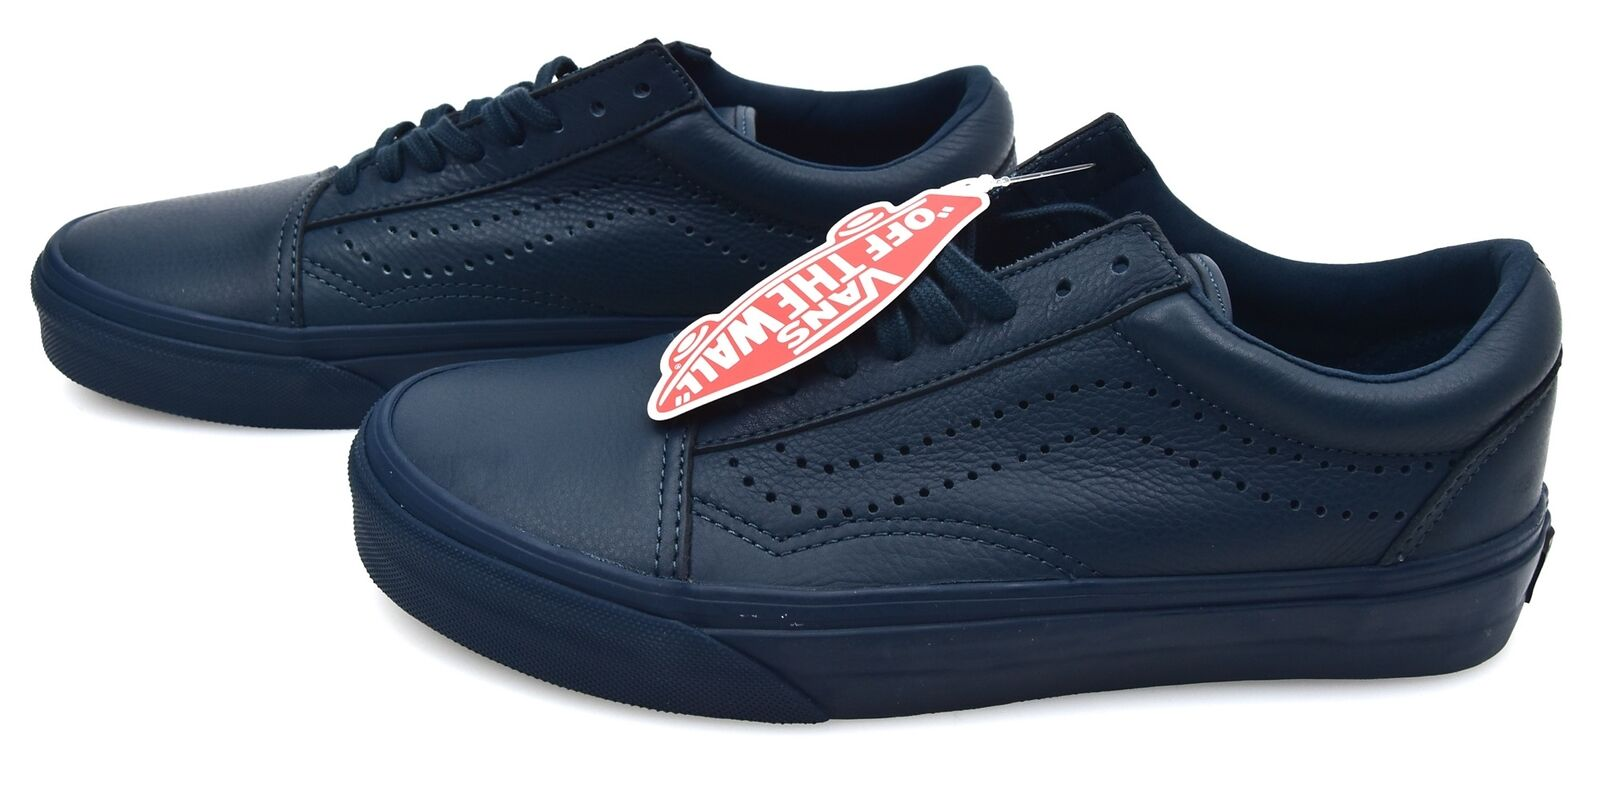 VANS WOMAN SNEAKER SHOES CASUAL FREE TIME LEATHER OLD SKOOL REISSUE VN0A2XS6JX7